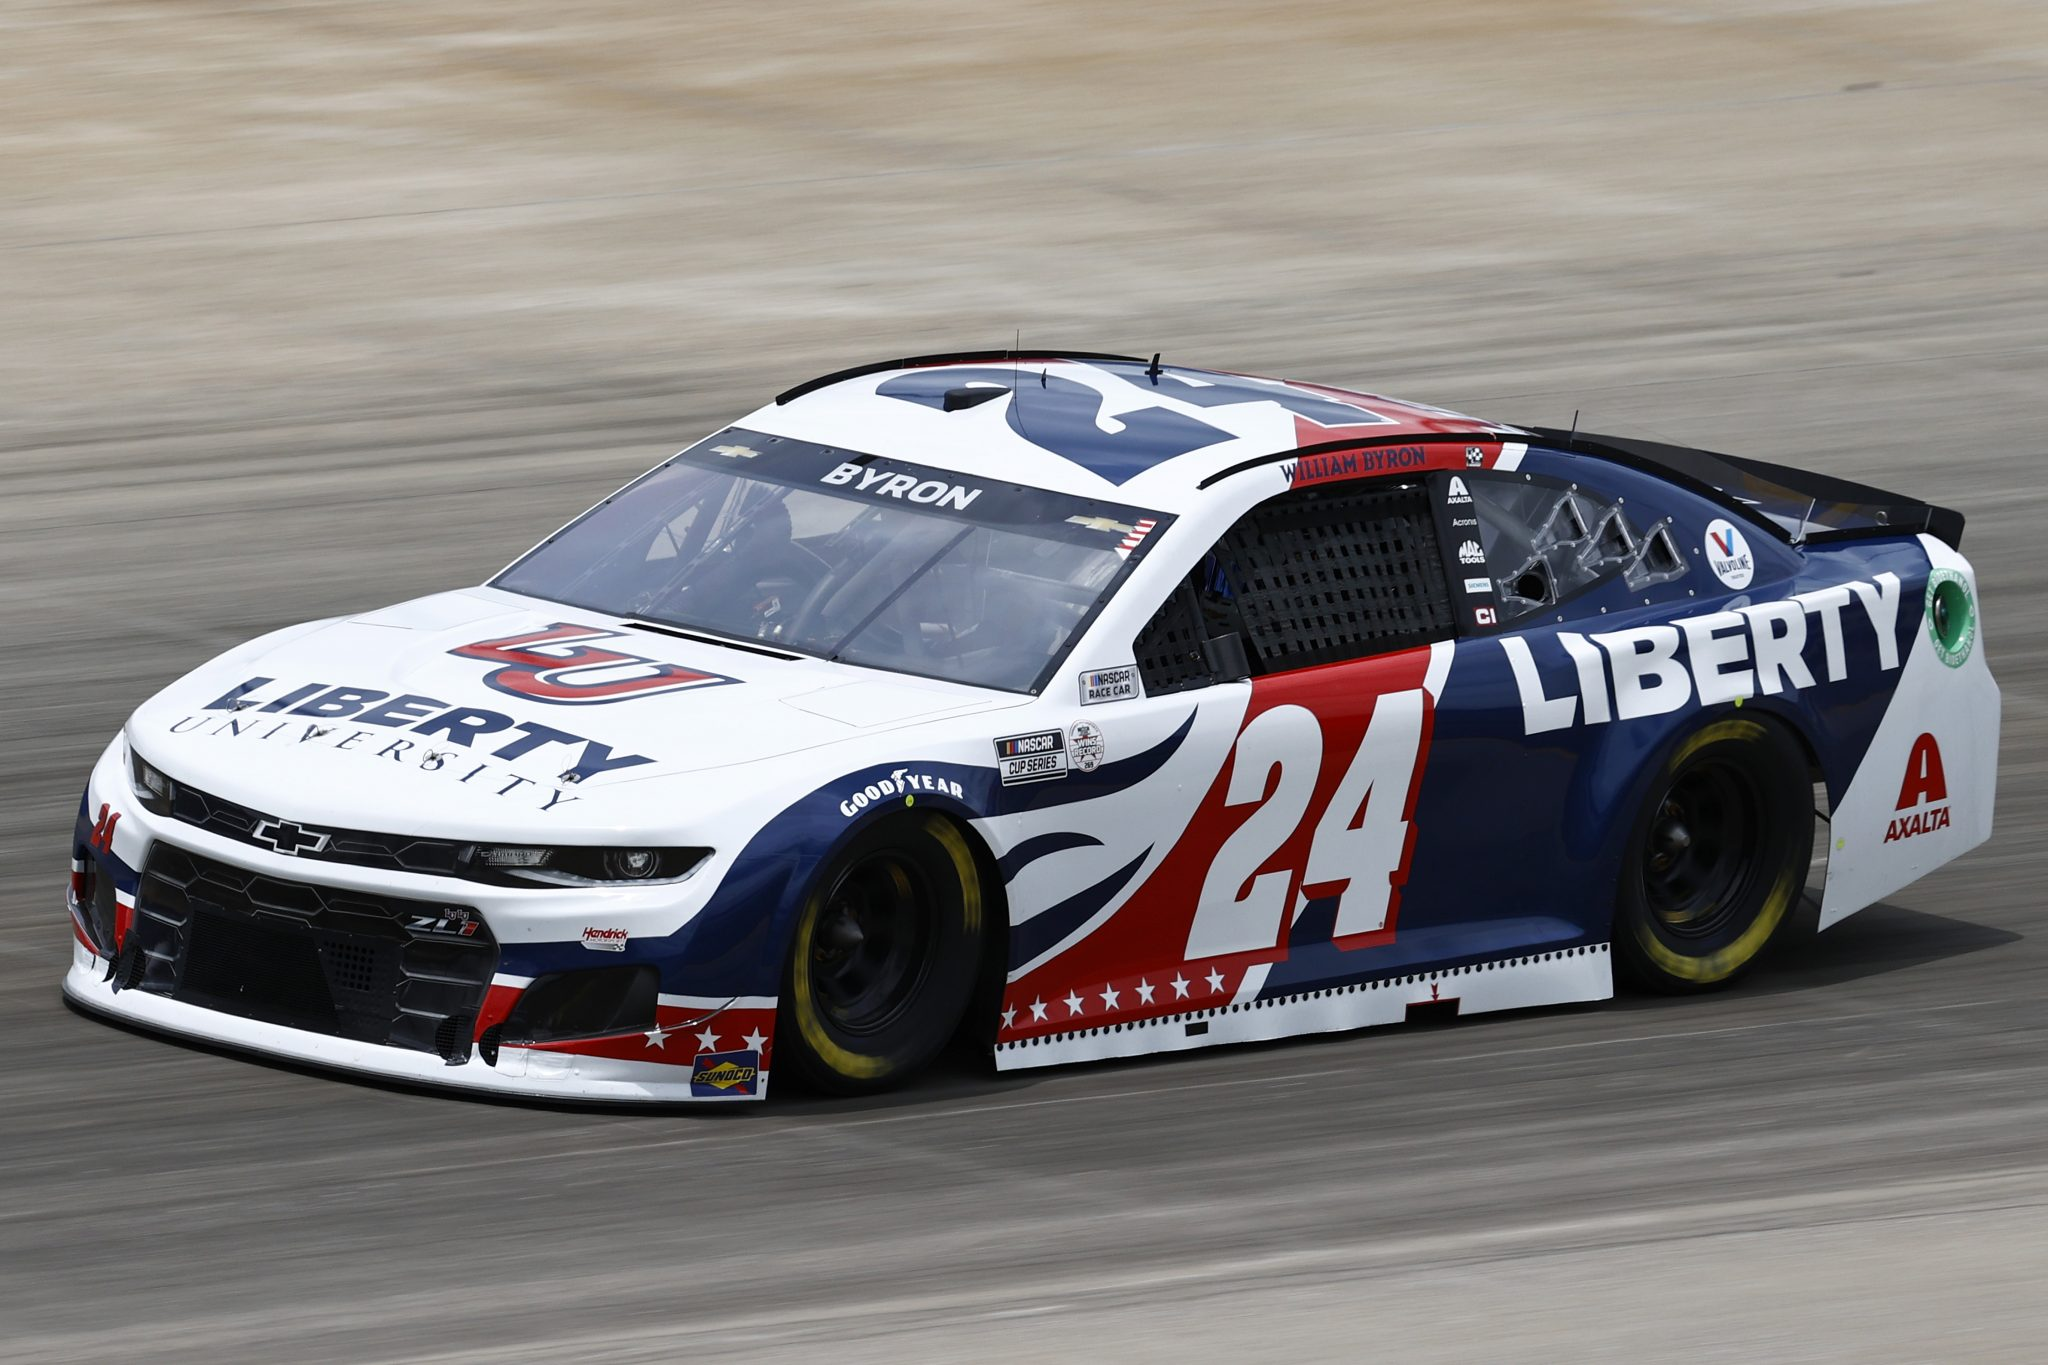 LEBANON, TENNESSEE - JUNE 19: William Byron, driver of the #24 Liberty University Chevrolet, drives during practice for the NASCAR Cup Series Ally 400 at Nashville Superspeedway on June 19, 2021 in Lebanon, Tennessee. (Photo by Jared C. Tilton/Getty Images)   Getty Images